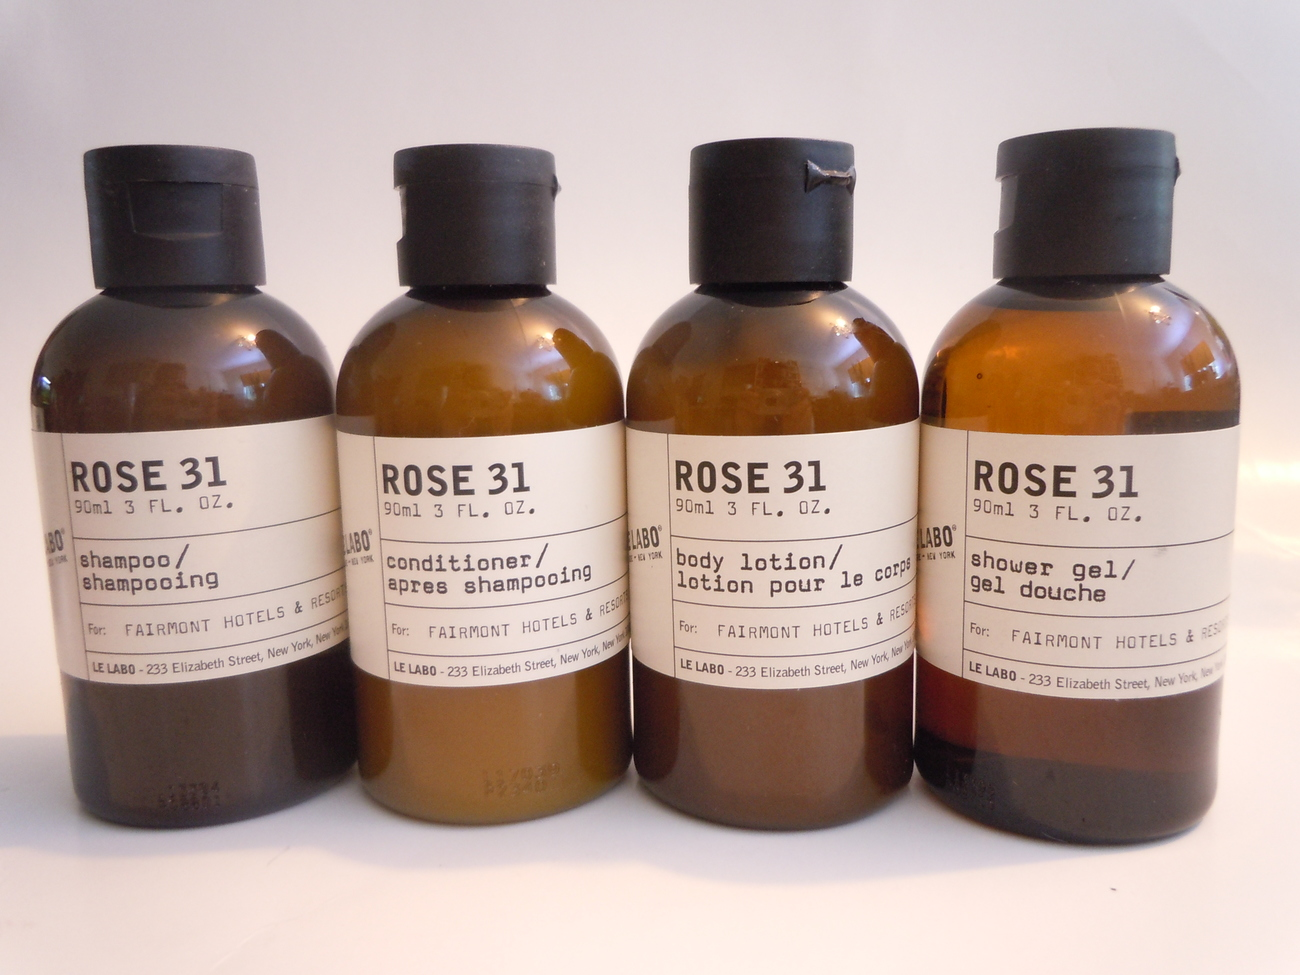 Le labo rose 31 shampoo conditioner shower gel body lotion - Rose 31 shower gel ...